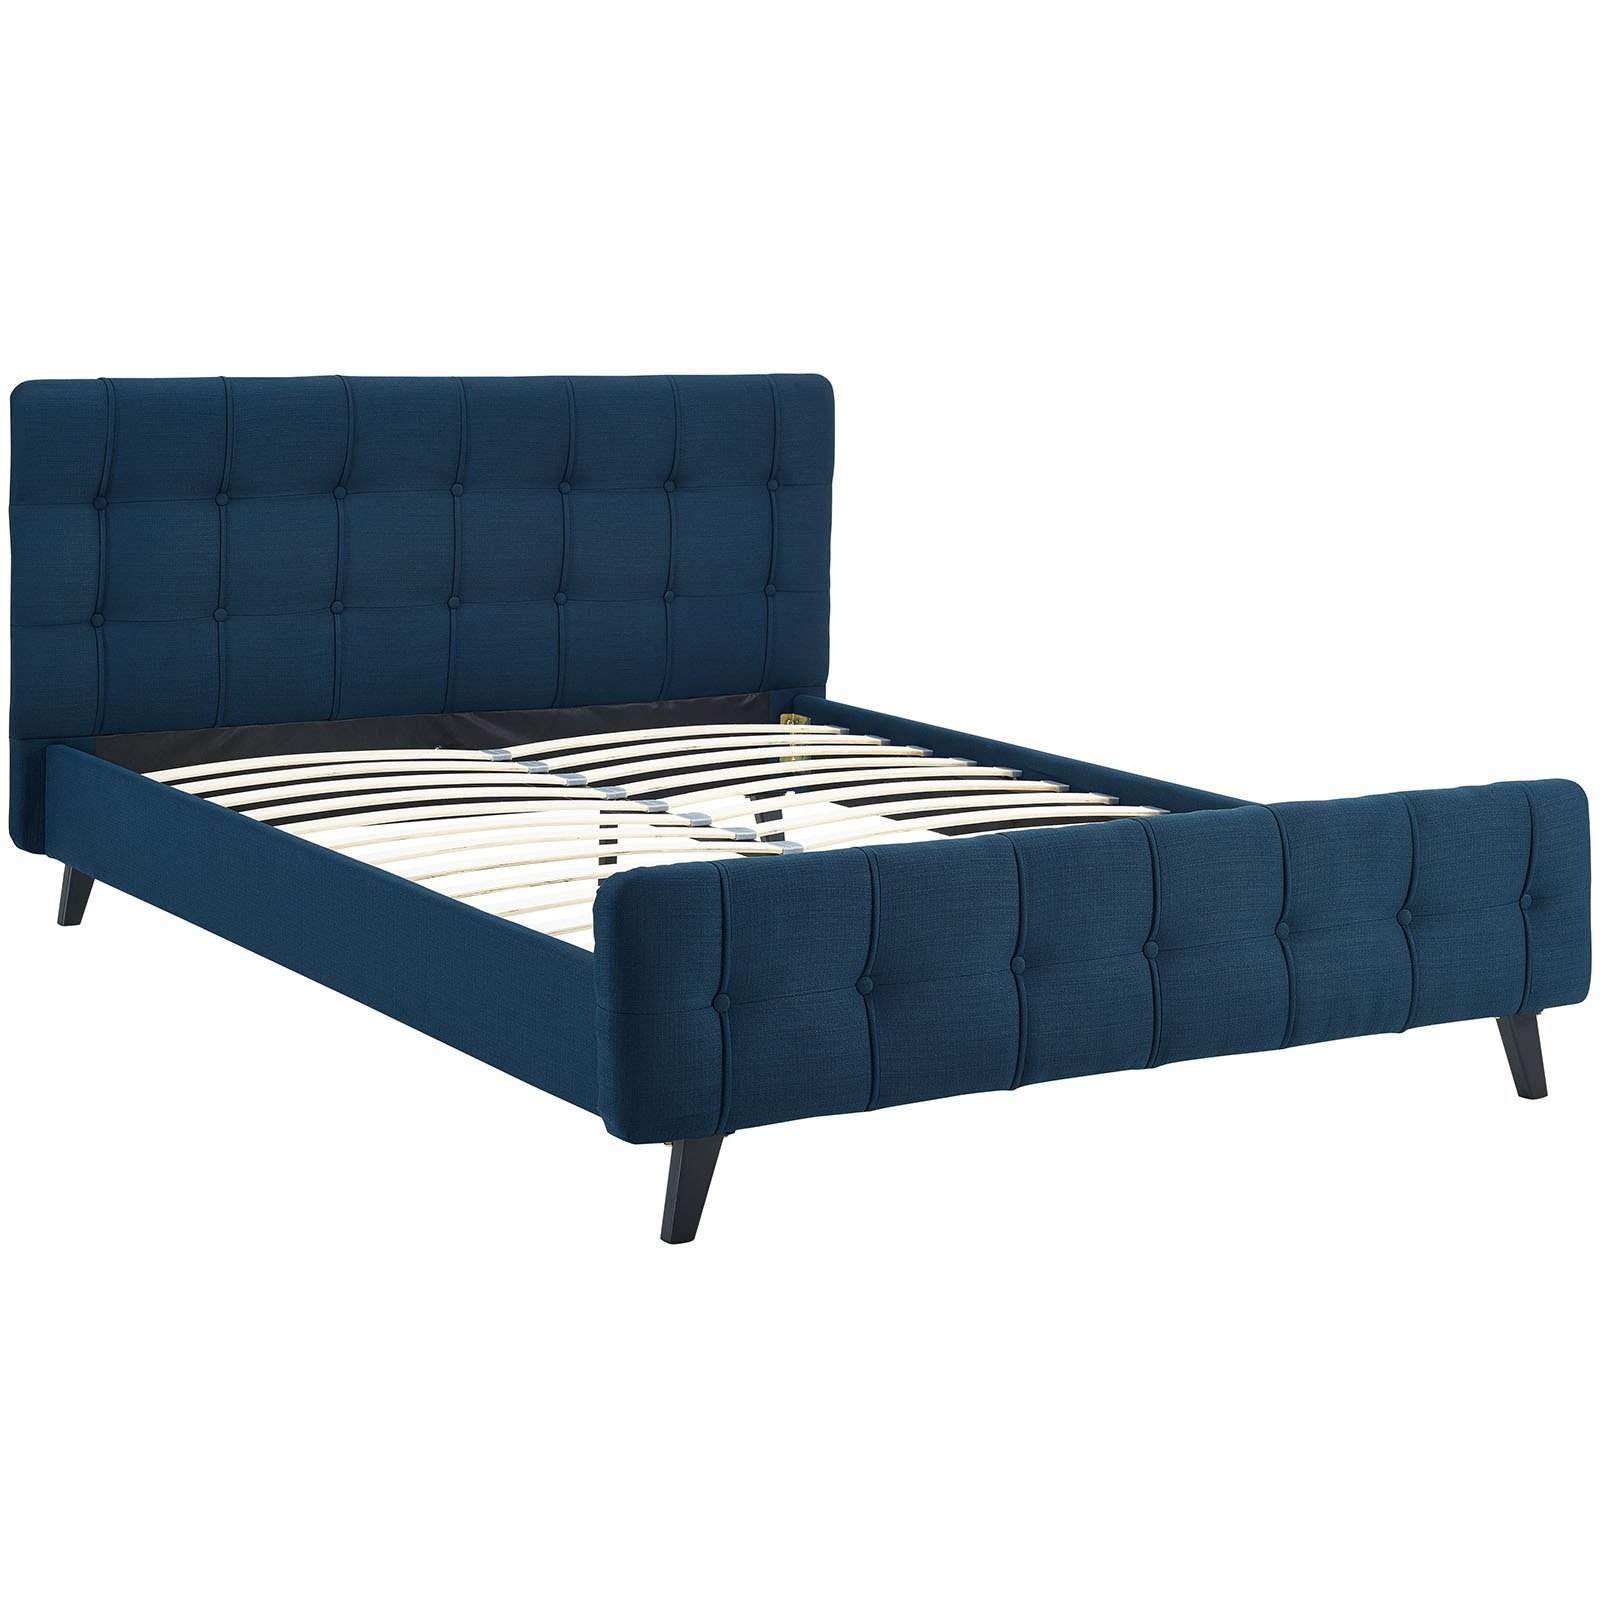 Modway Ophelia Queen Upholstered Platform Bed, Multiple Colors